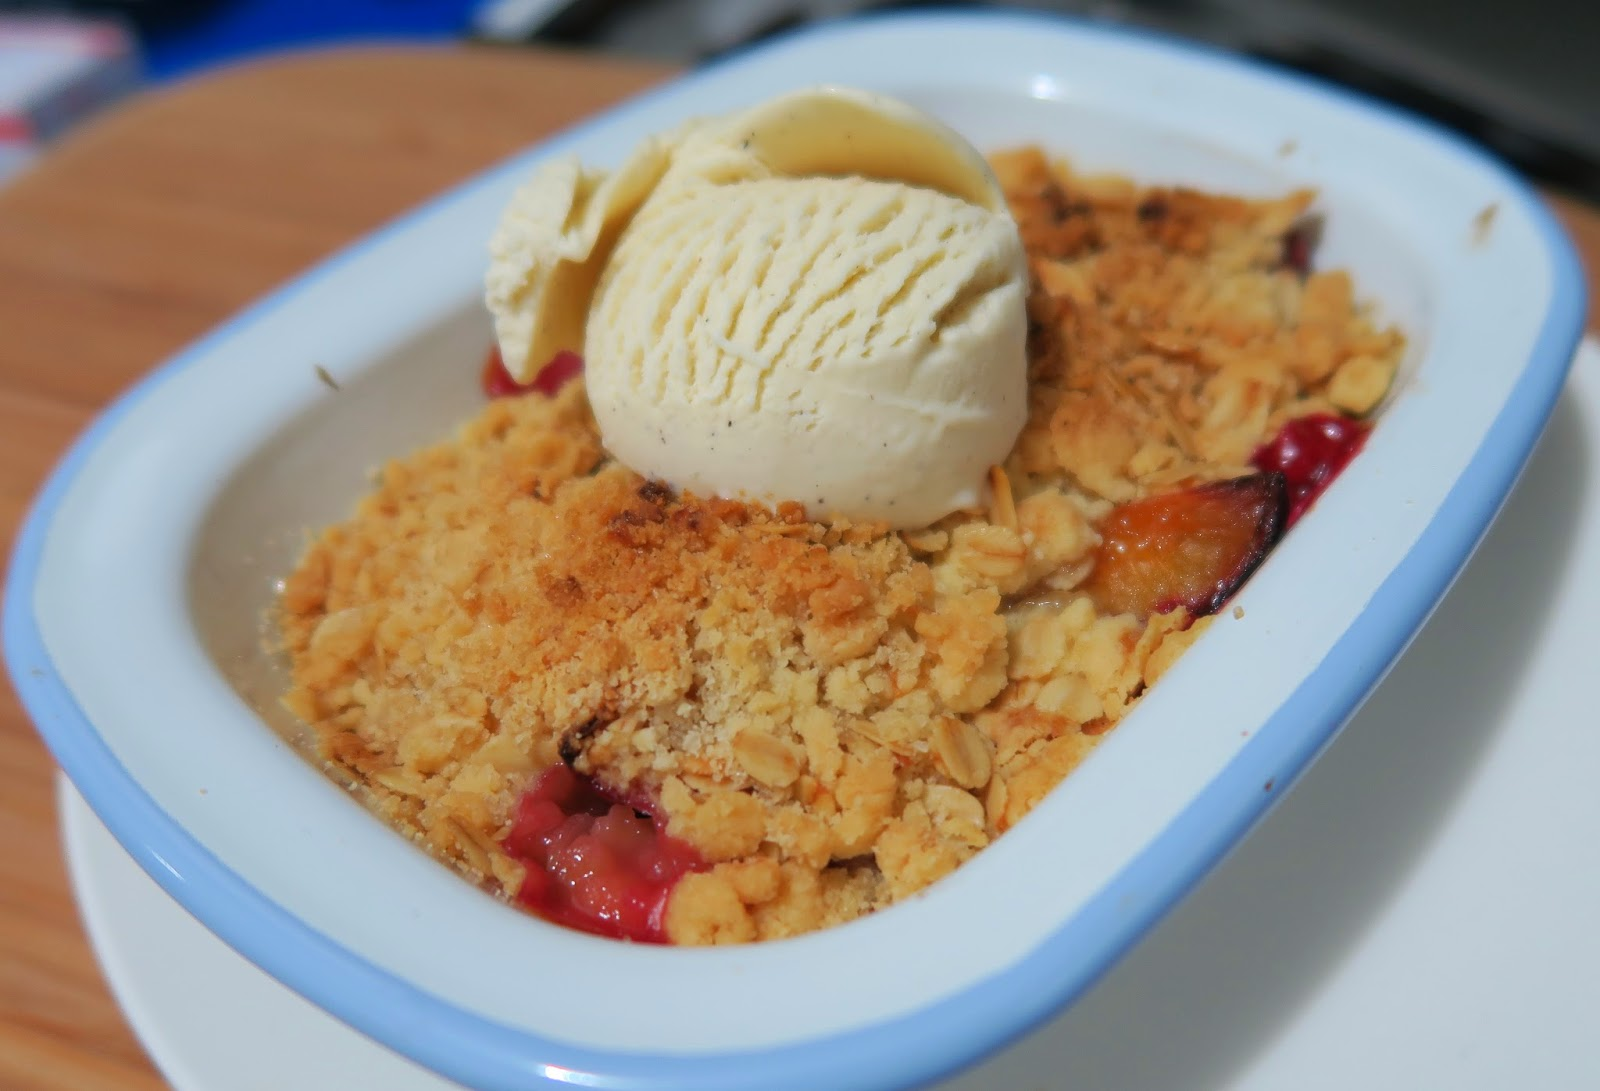 Plum crumble adapted from Nigella Lawson.